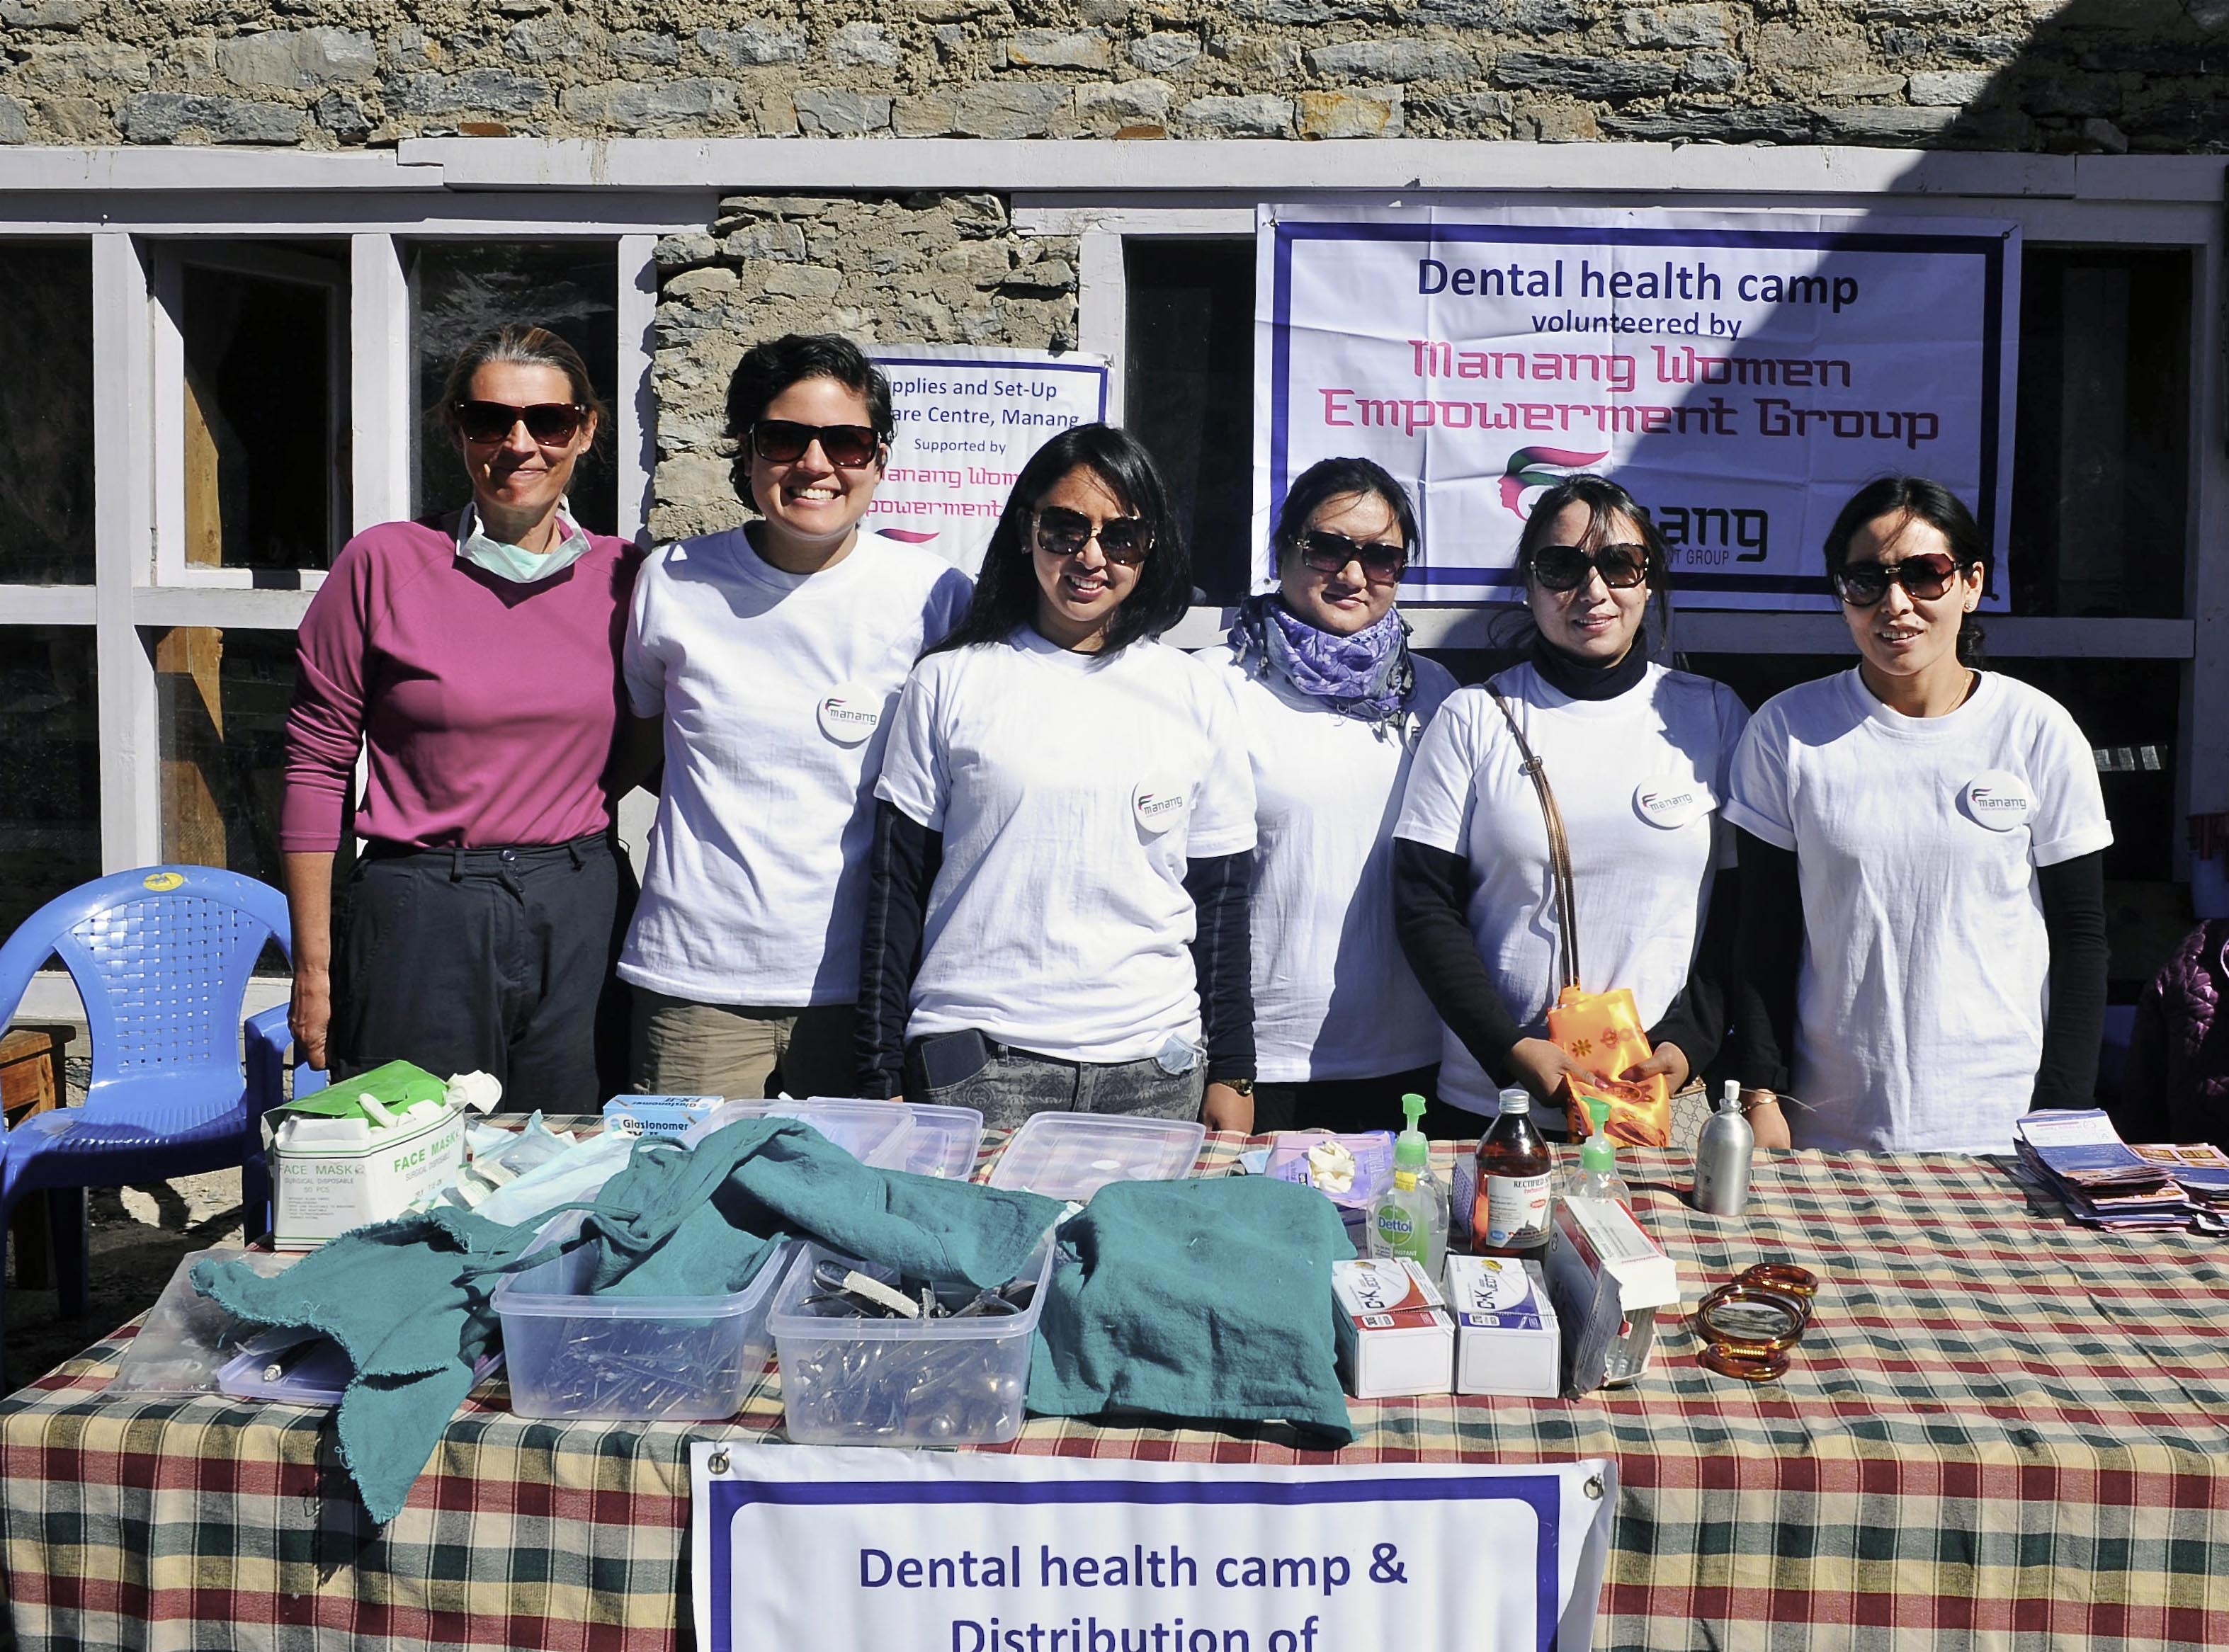 Dr Tsering Gurung conducts numerous dental camps in Nepal in